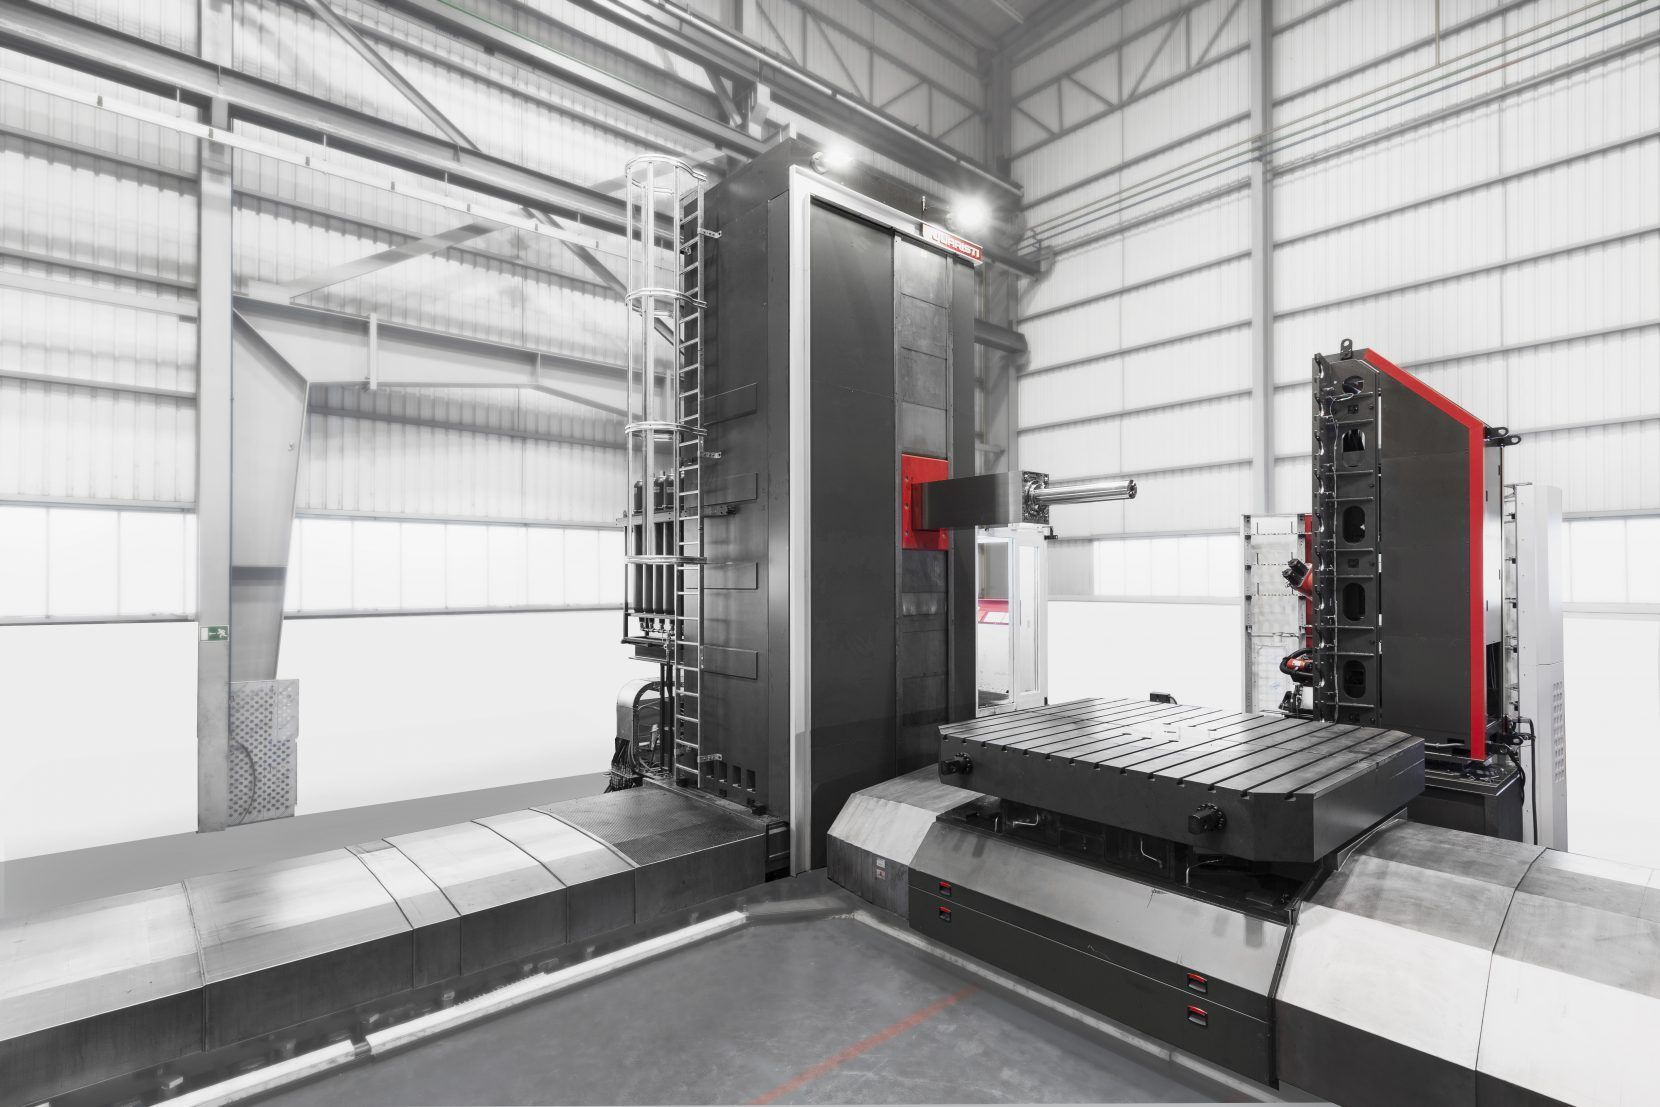 Zaigler and JUARISTI: a large hydrostatic boring machine is the finishing touch to decades of successful cooperation